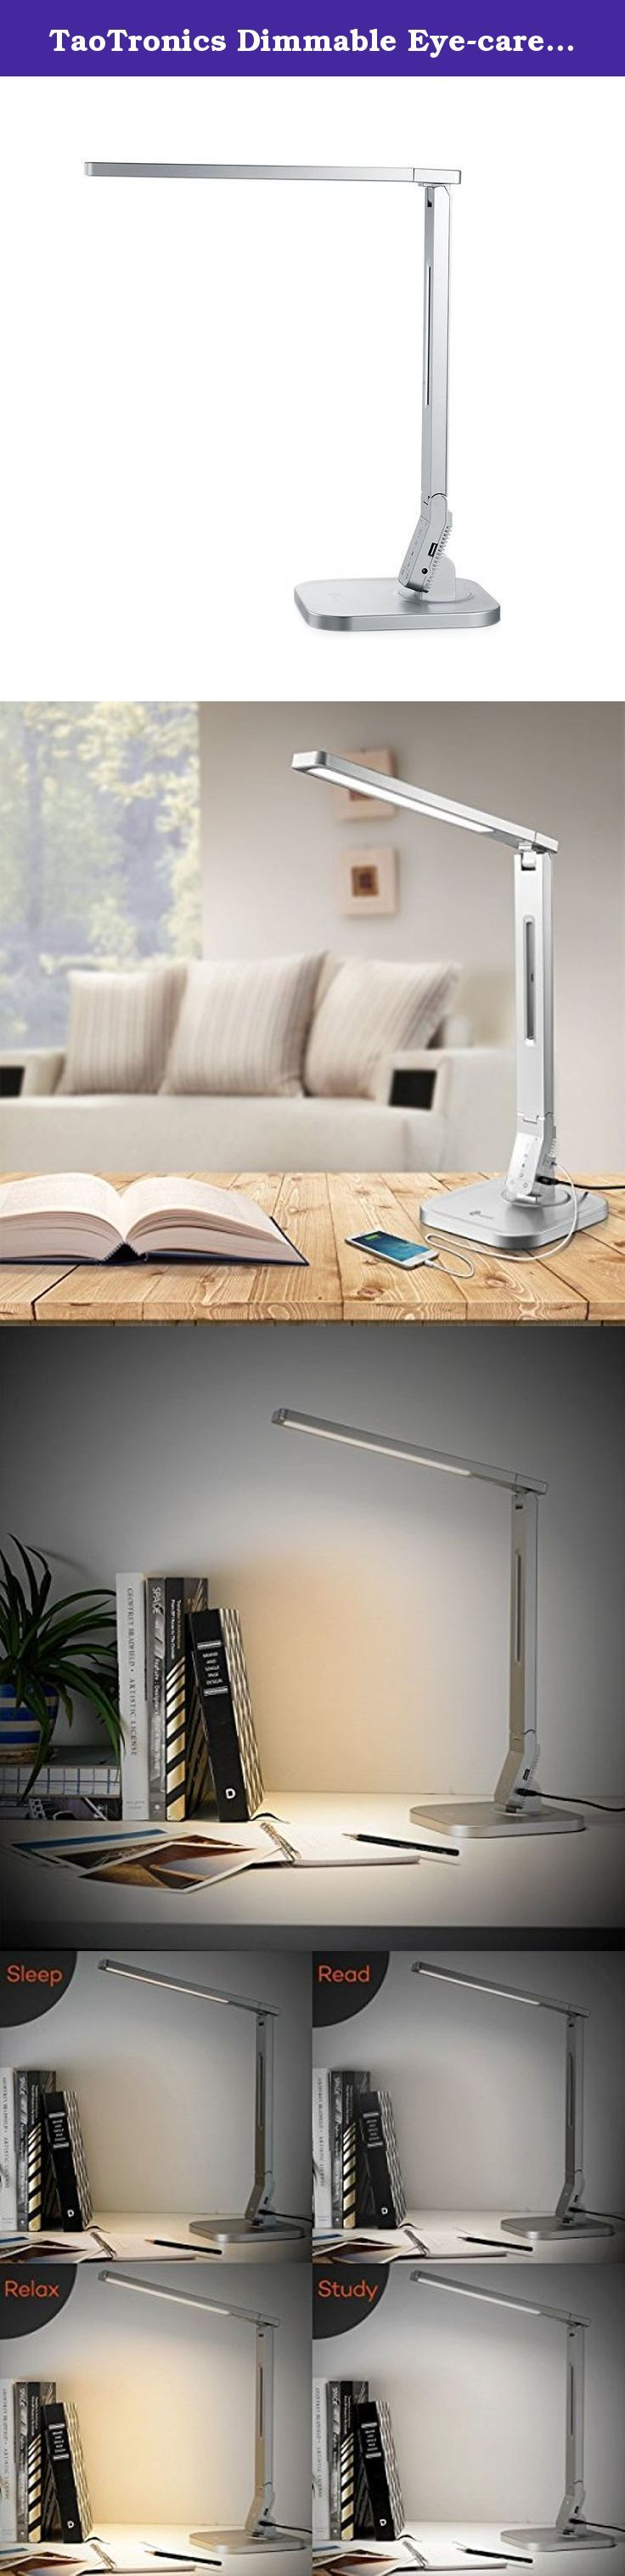 TaoTronics Dimmable Eye-care LED Desk Lamp(Silver, 4 Lighting Modes, 5-Level Dimmer, Touch-Sensitive Control Panel, 1-Hour Auto Timer, 5V/2A USB Charging Port,, Mobile Device Charger). TaoTronics Elune TT-DL06(Silver) is the new generation energy-saving and eco-friendly LED desk lamp and the perfect source for office, home, dorm, etc. With its elegant and ergonomic design, this lamp is ideal for for your decoration while exceeding your lighting requirements.